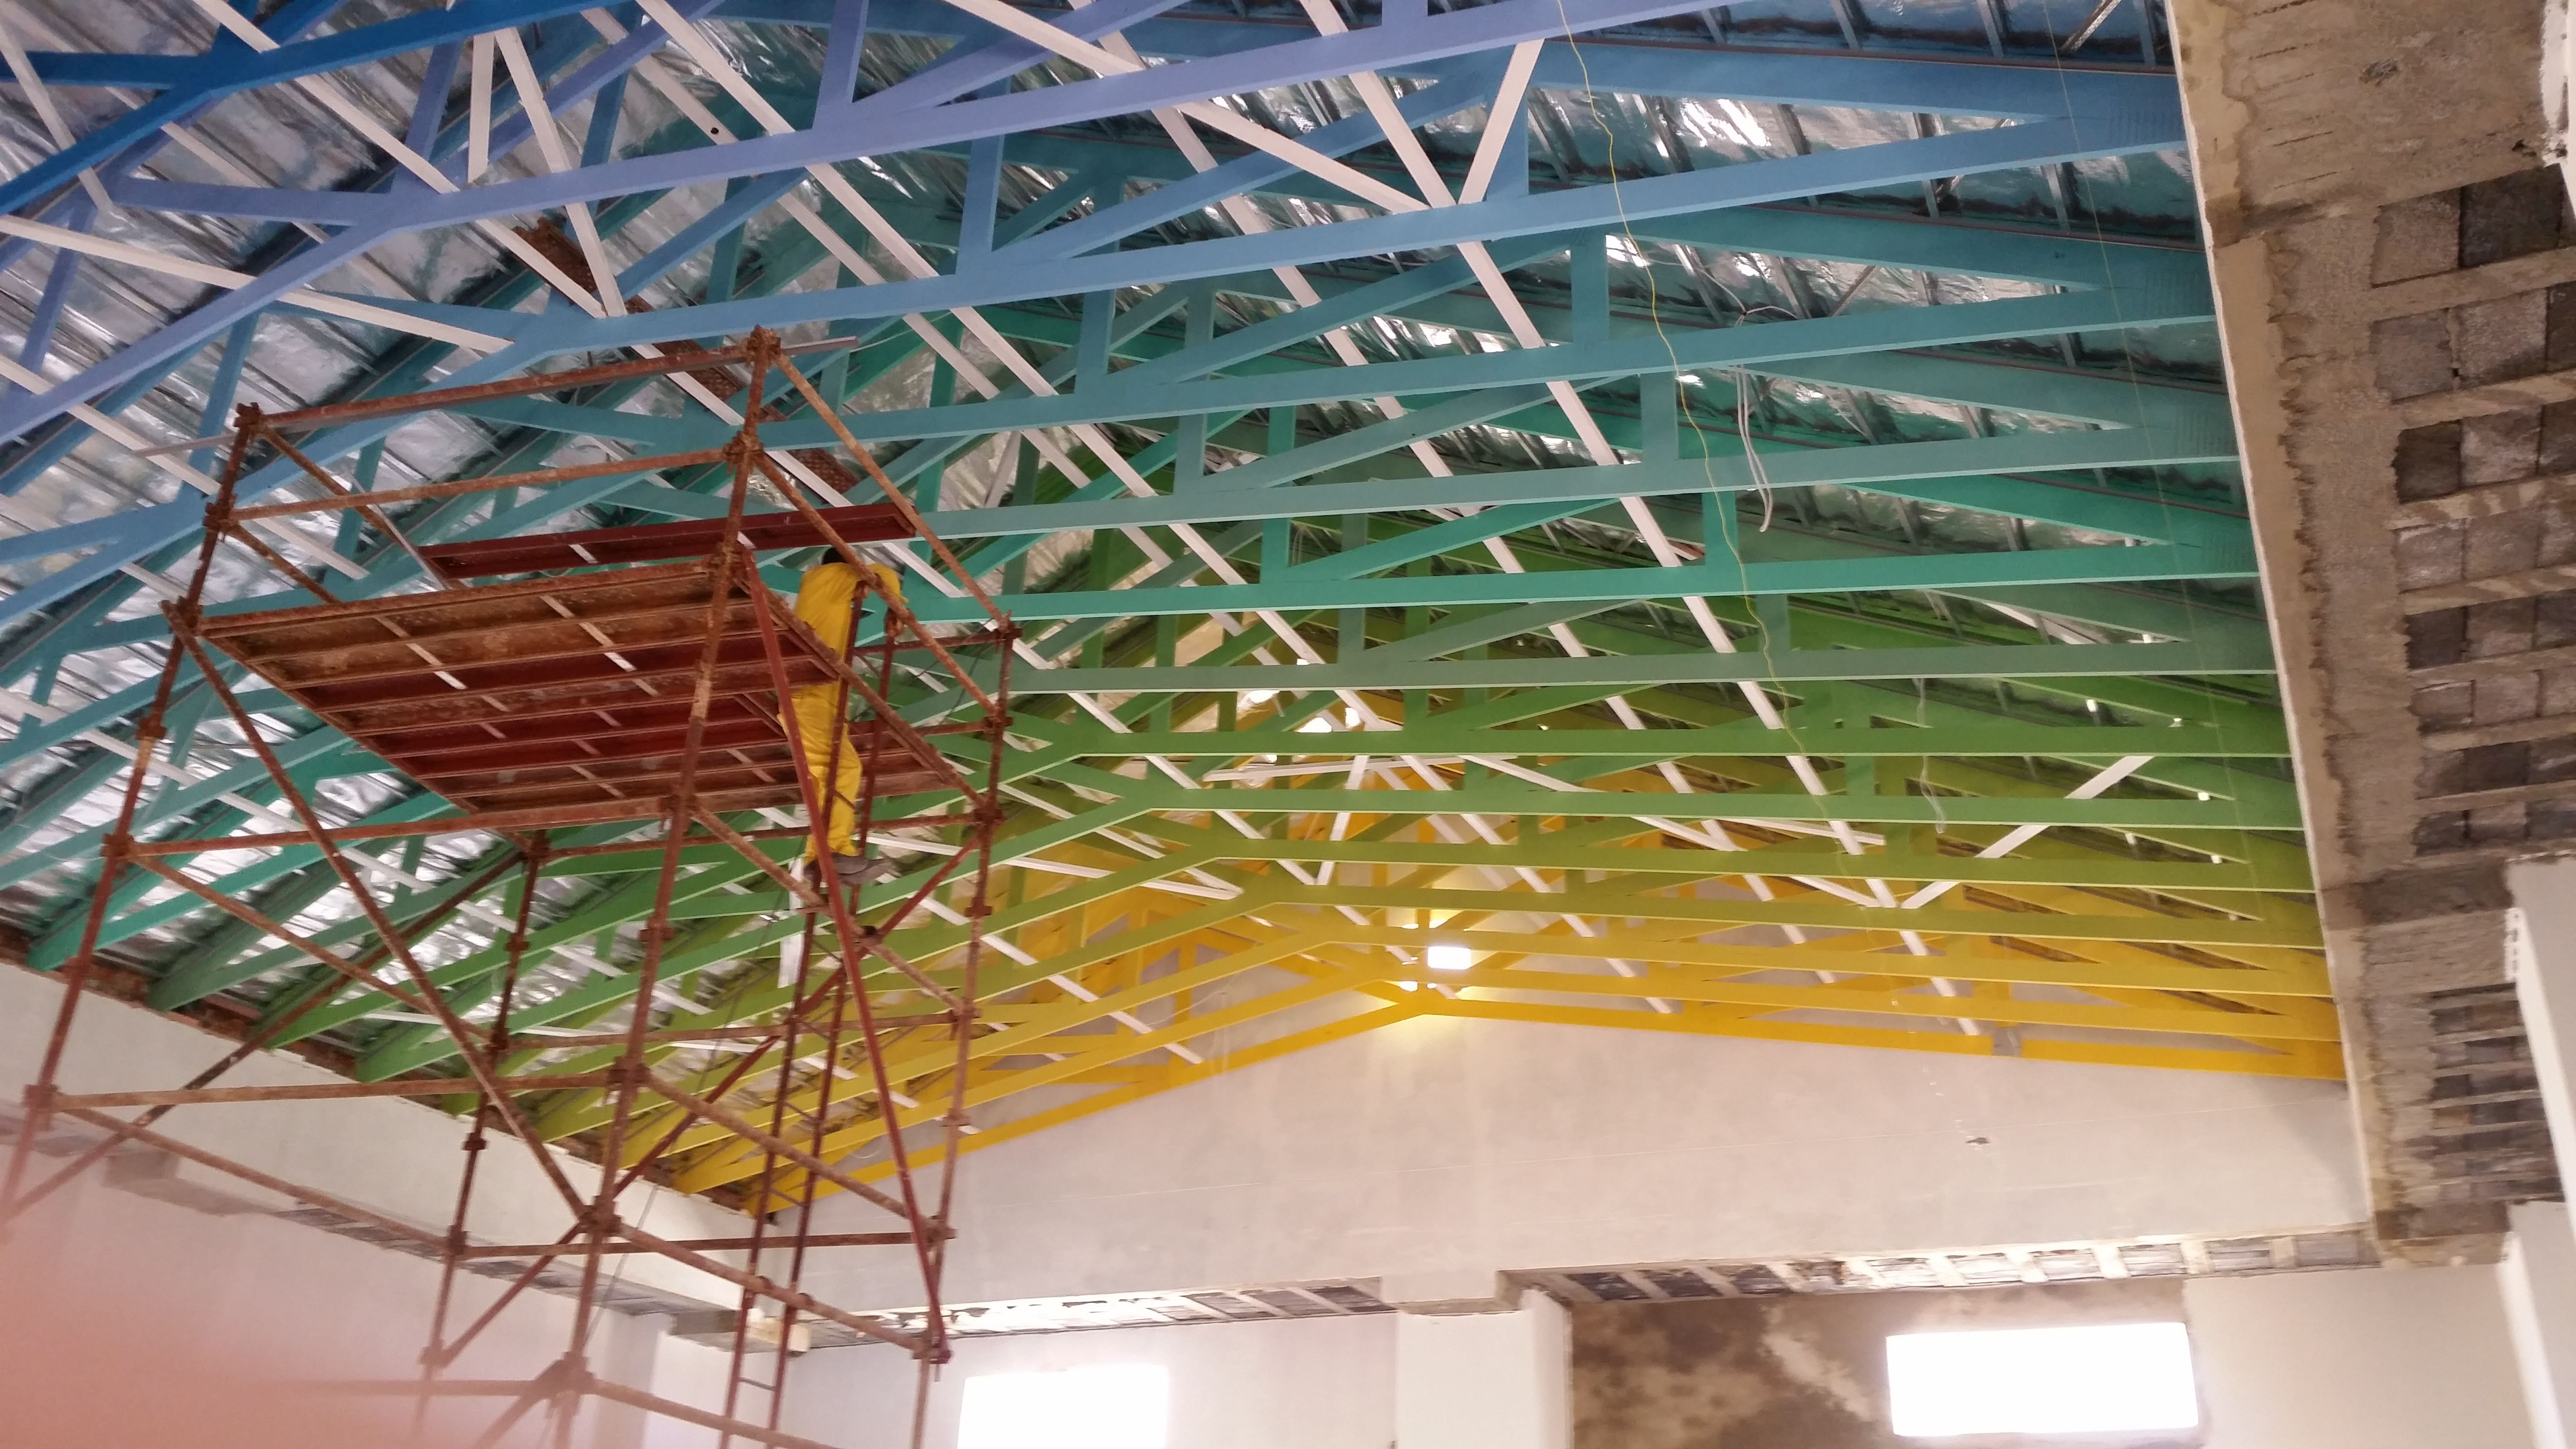 Pin By Technistrut Pty Ltd On Rainbow Roof Trusses Roof Trusses Roof Design Roofing Services